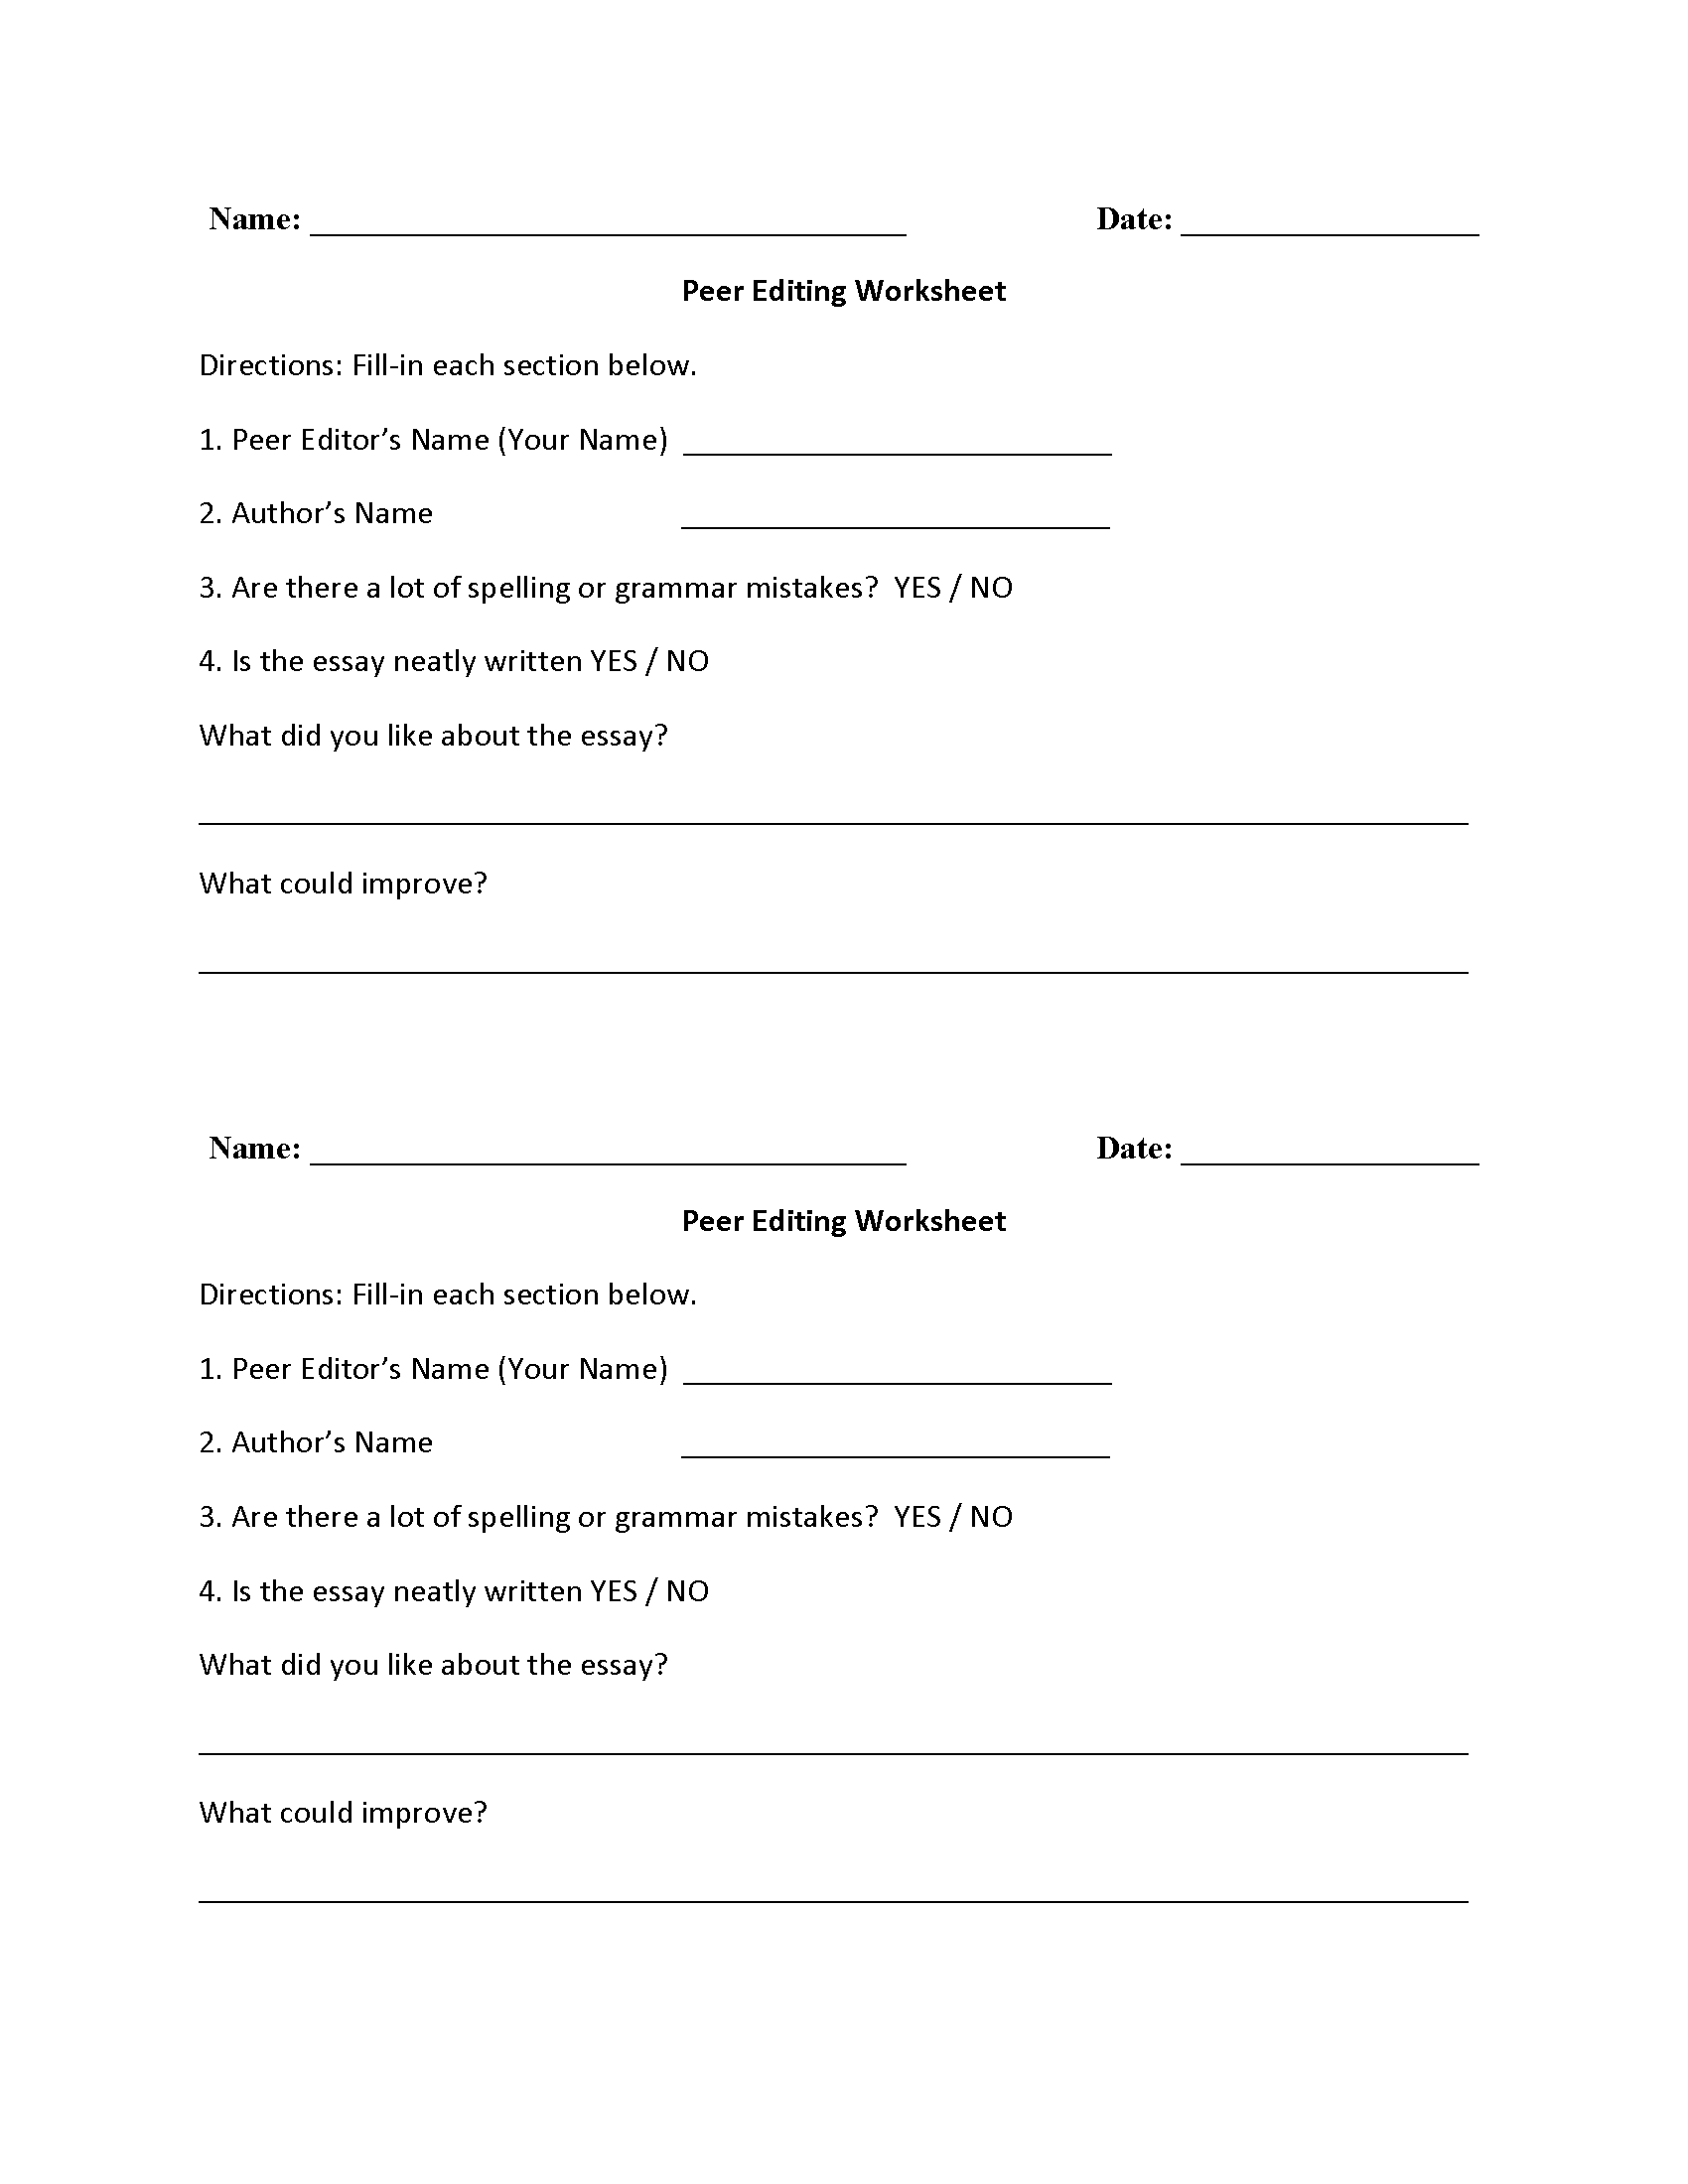 Worksheets Editing Worksheets writing worksheets editing peer half sheet worksheet